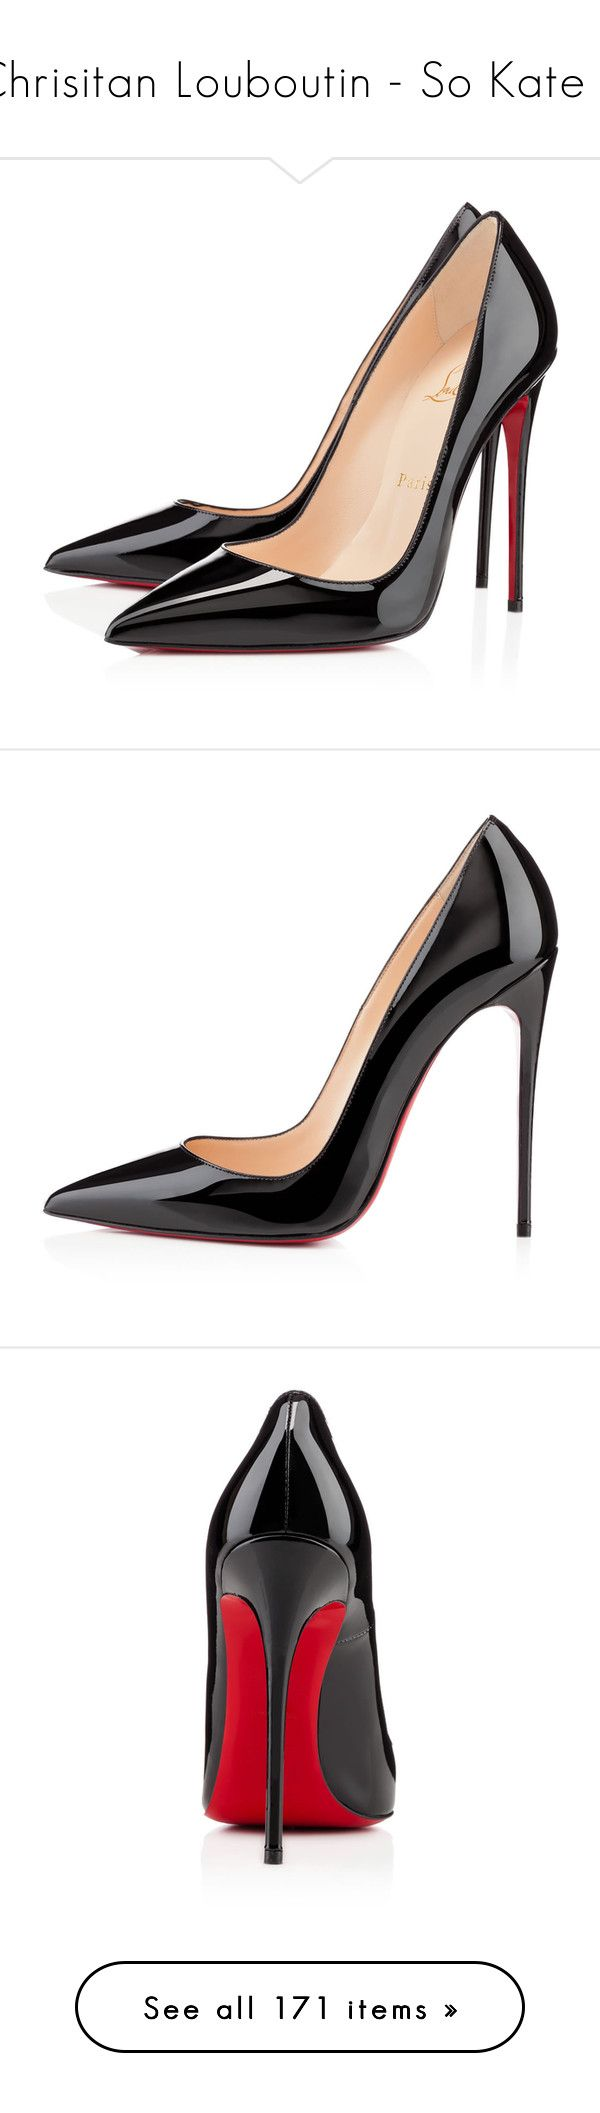 """""""Chrisitan Louboutin - So Kate 1"""" by enchantedxox ❤ liked on Polyvore featuring shoes, pumps, heels, christian louboutin, louboutin, black, black stiletto pumps, high heel pumps, patent leather pumps and black pointy-toe pumps"""